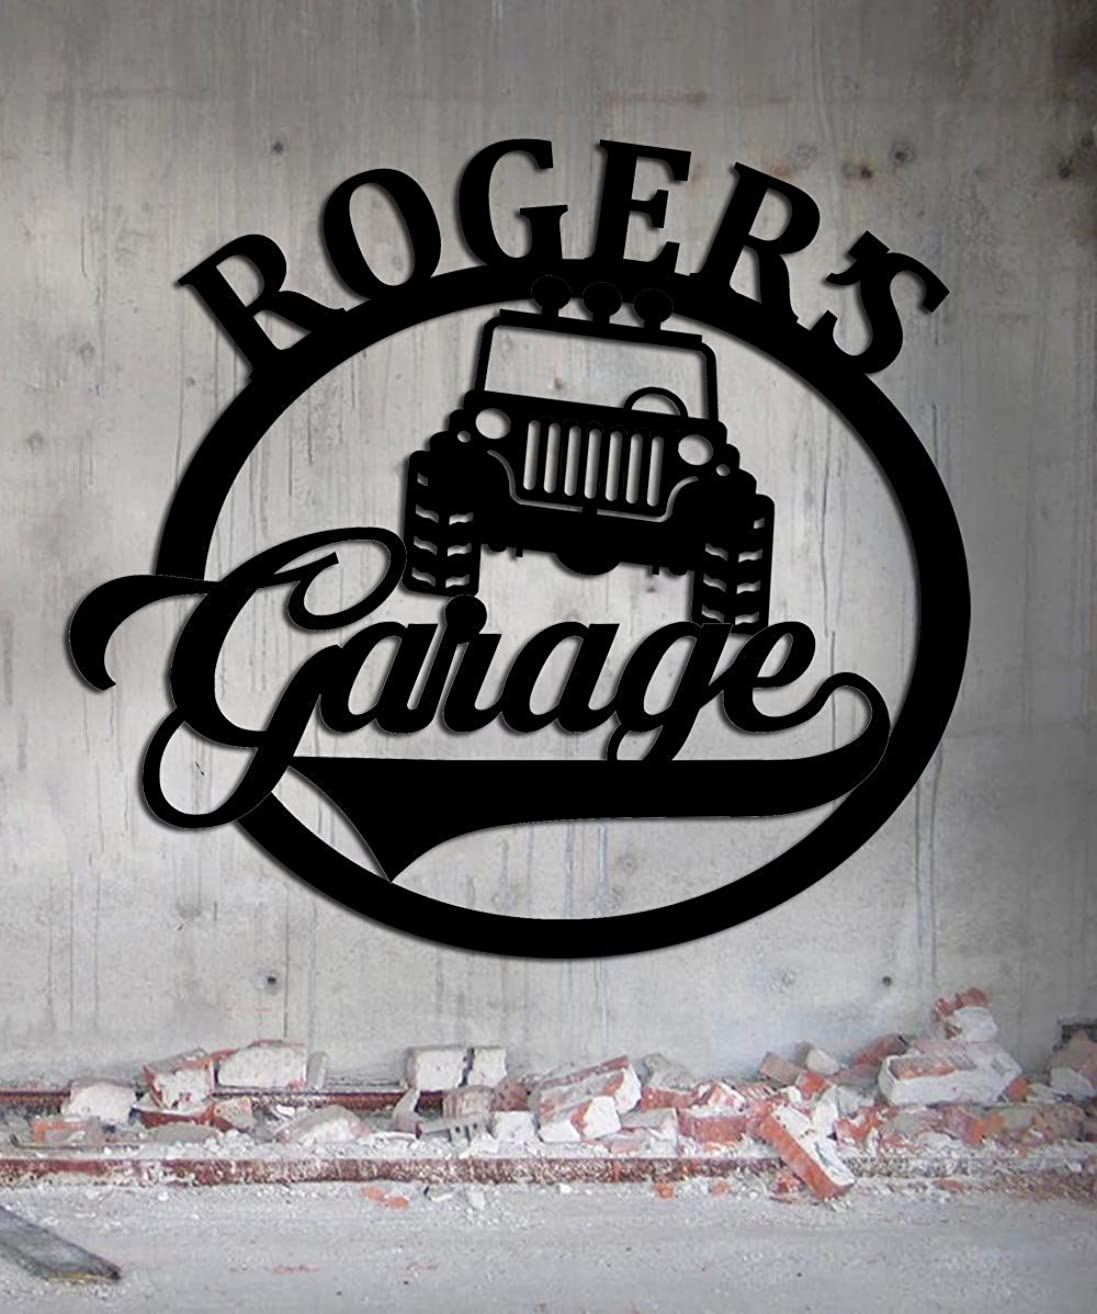 Jeep Garage - Personalized Sign - Metal Wall Art- Customize It!- Metal Wall Art Man Cave Grandpa's Dad's Or Custom Name